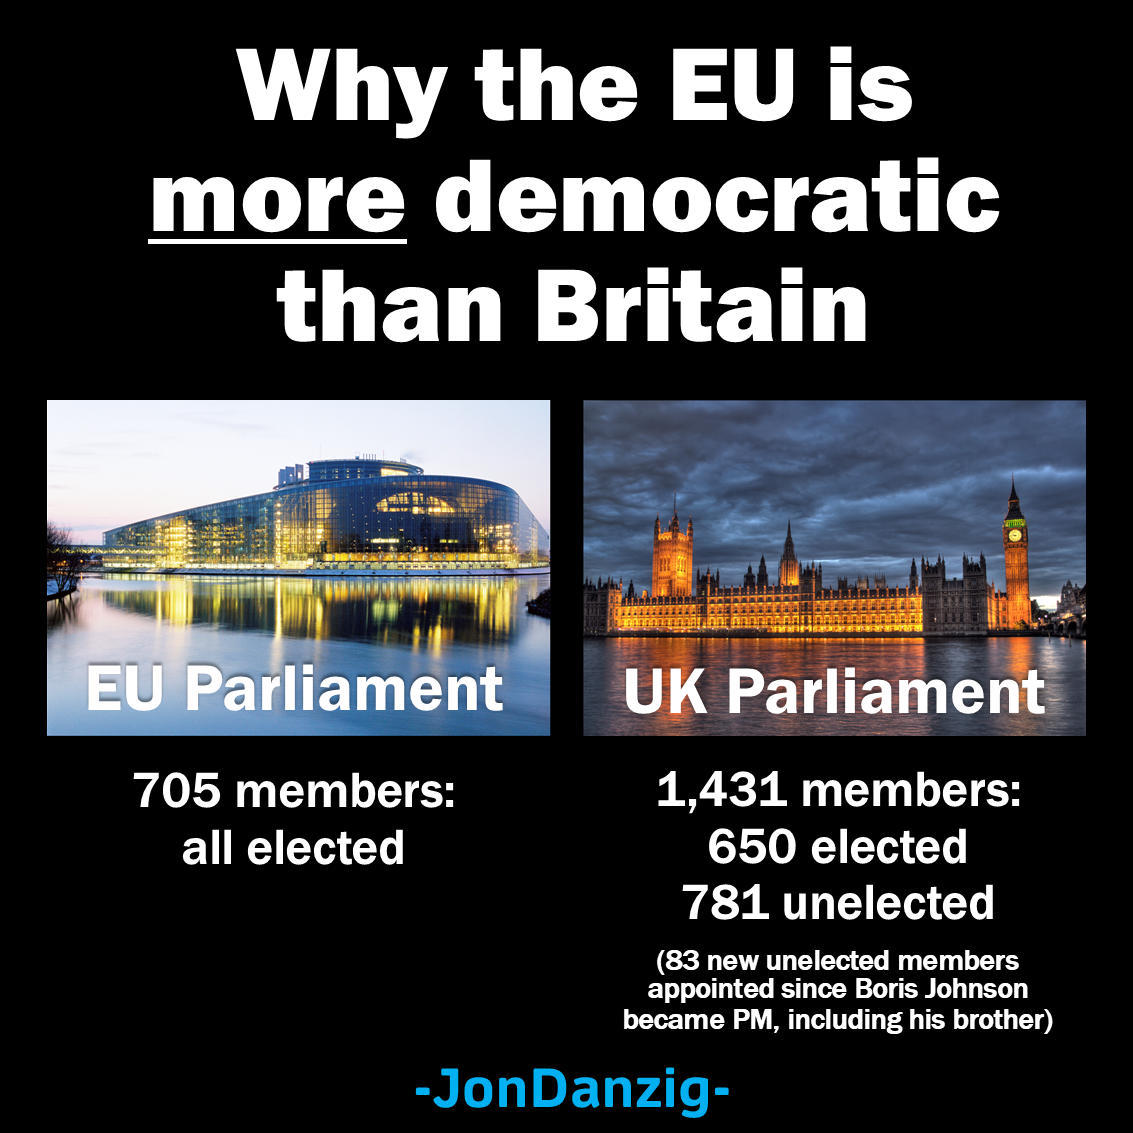 Why the EU is more democratic than the UK